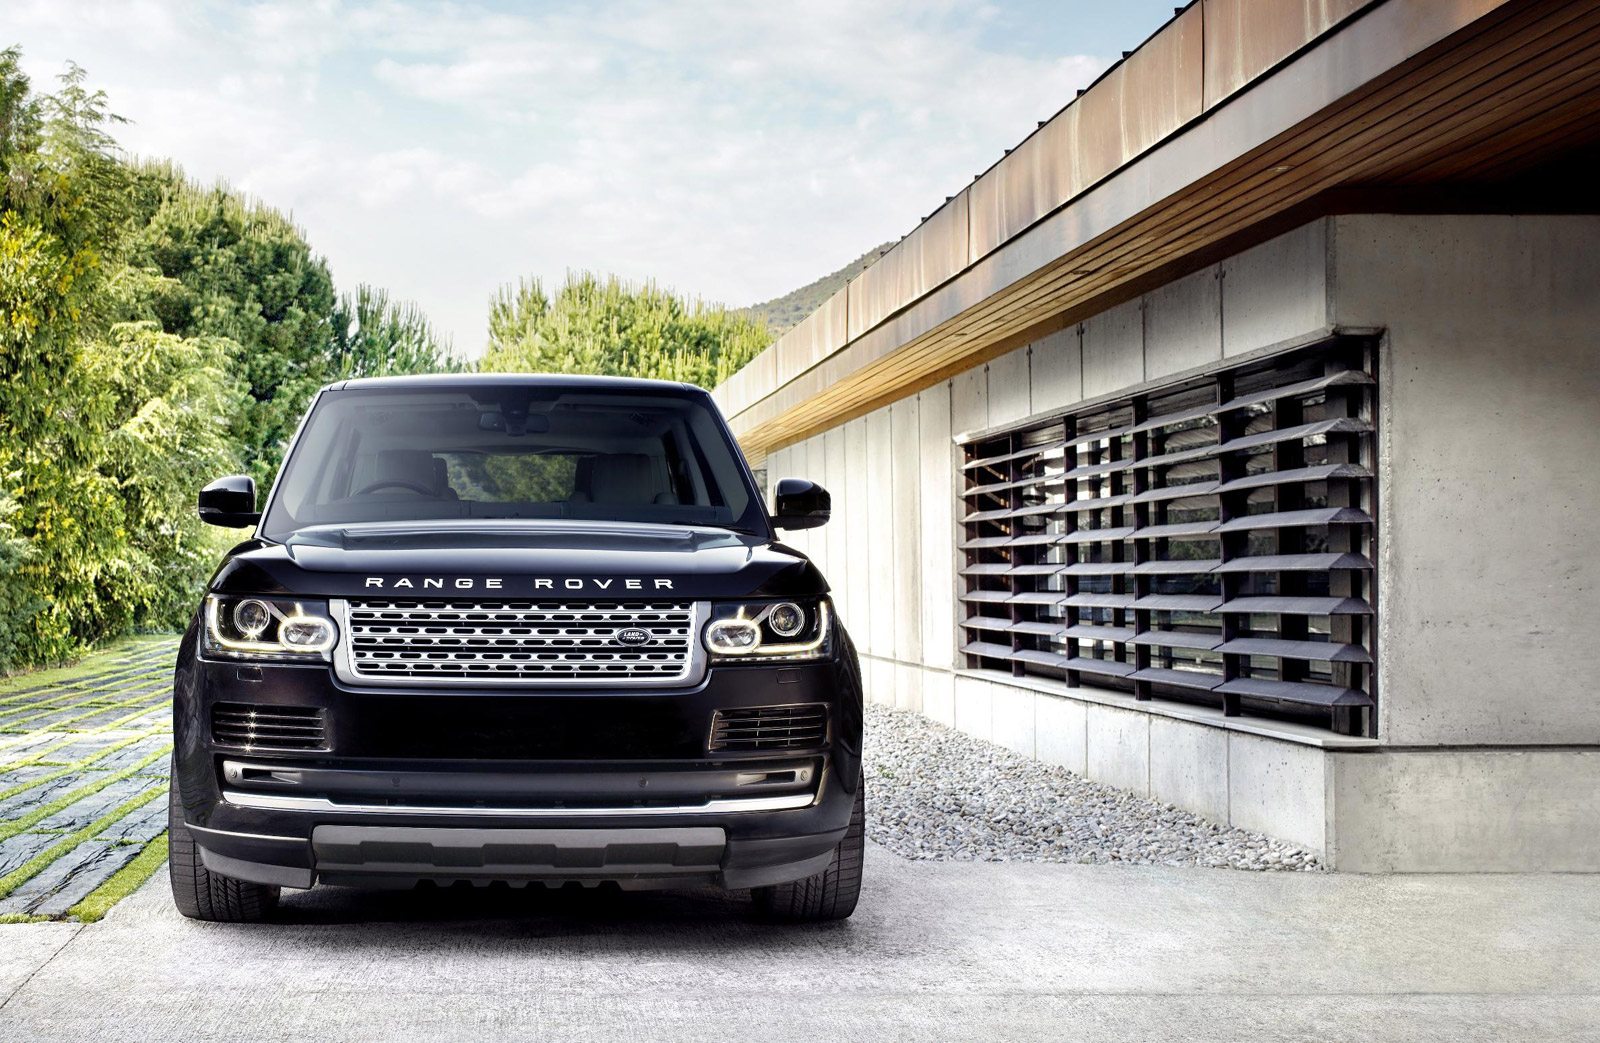 2013 2014 Land Rover Range Rover Recalled For Airbag